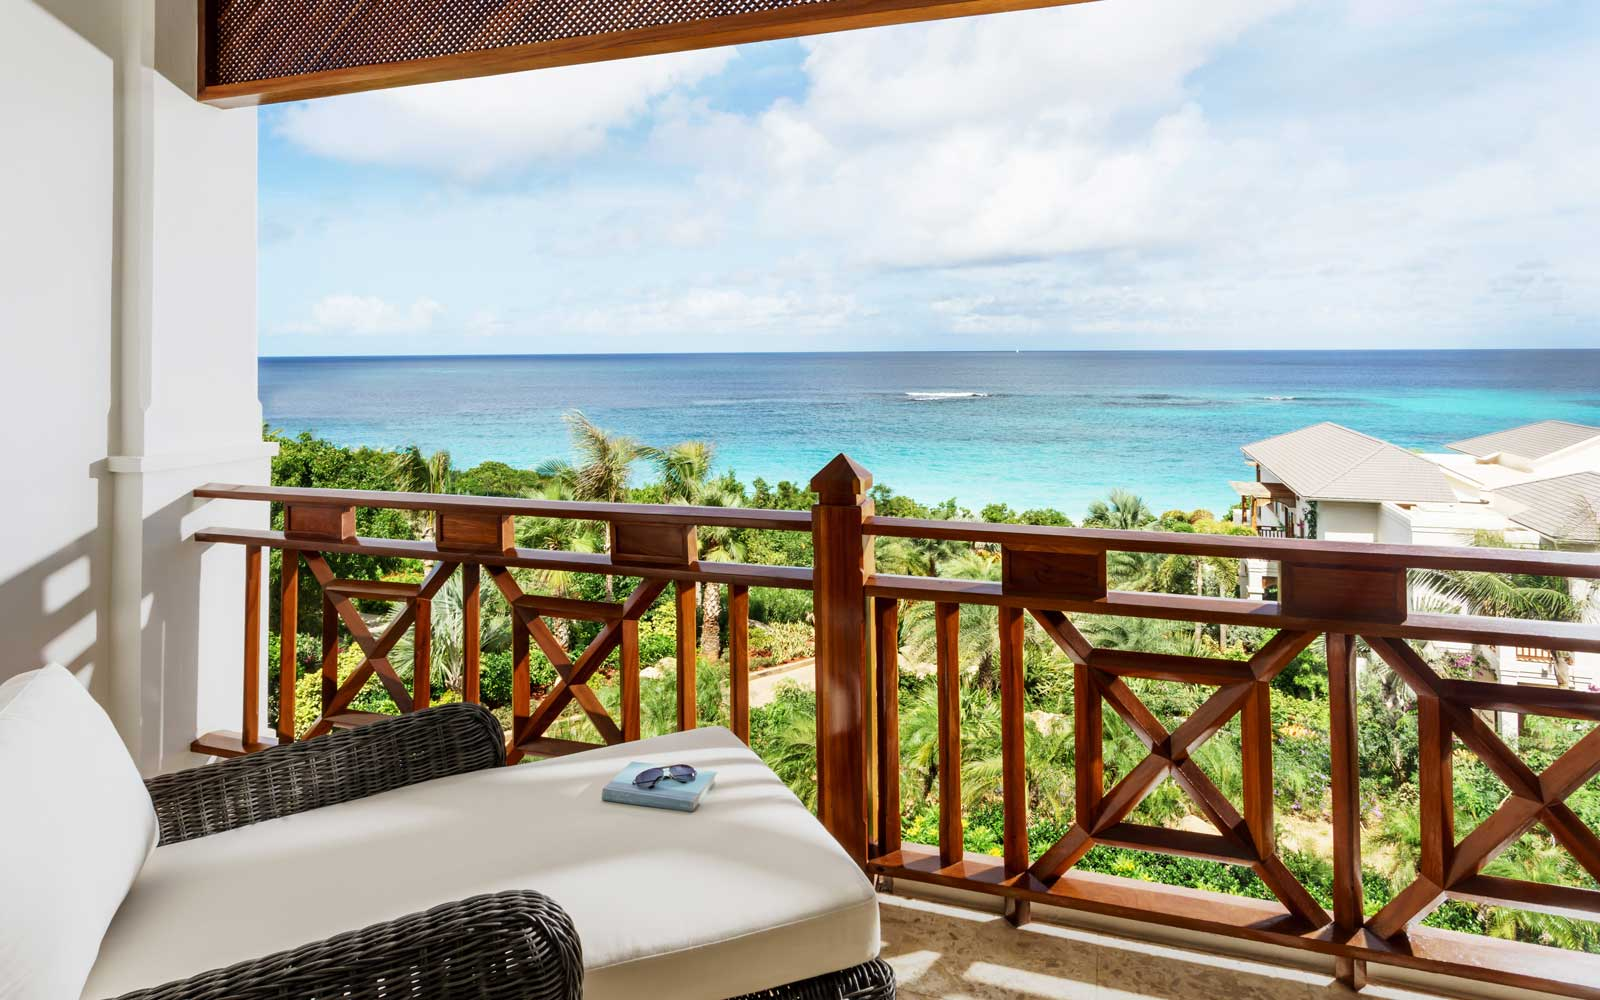 View from a room at the Zemi Beach House, in Anguilla